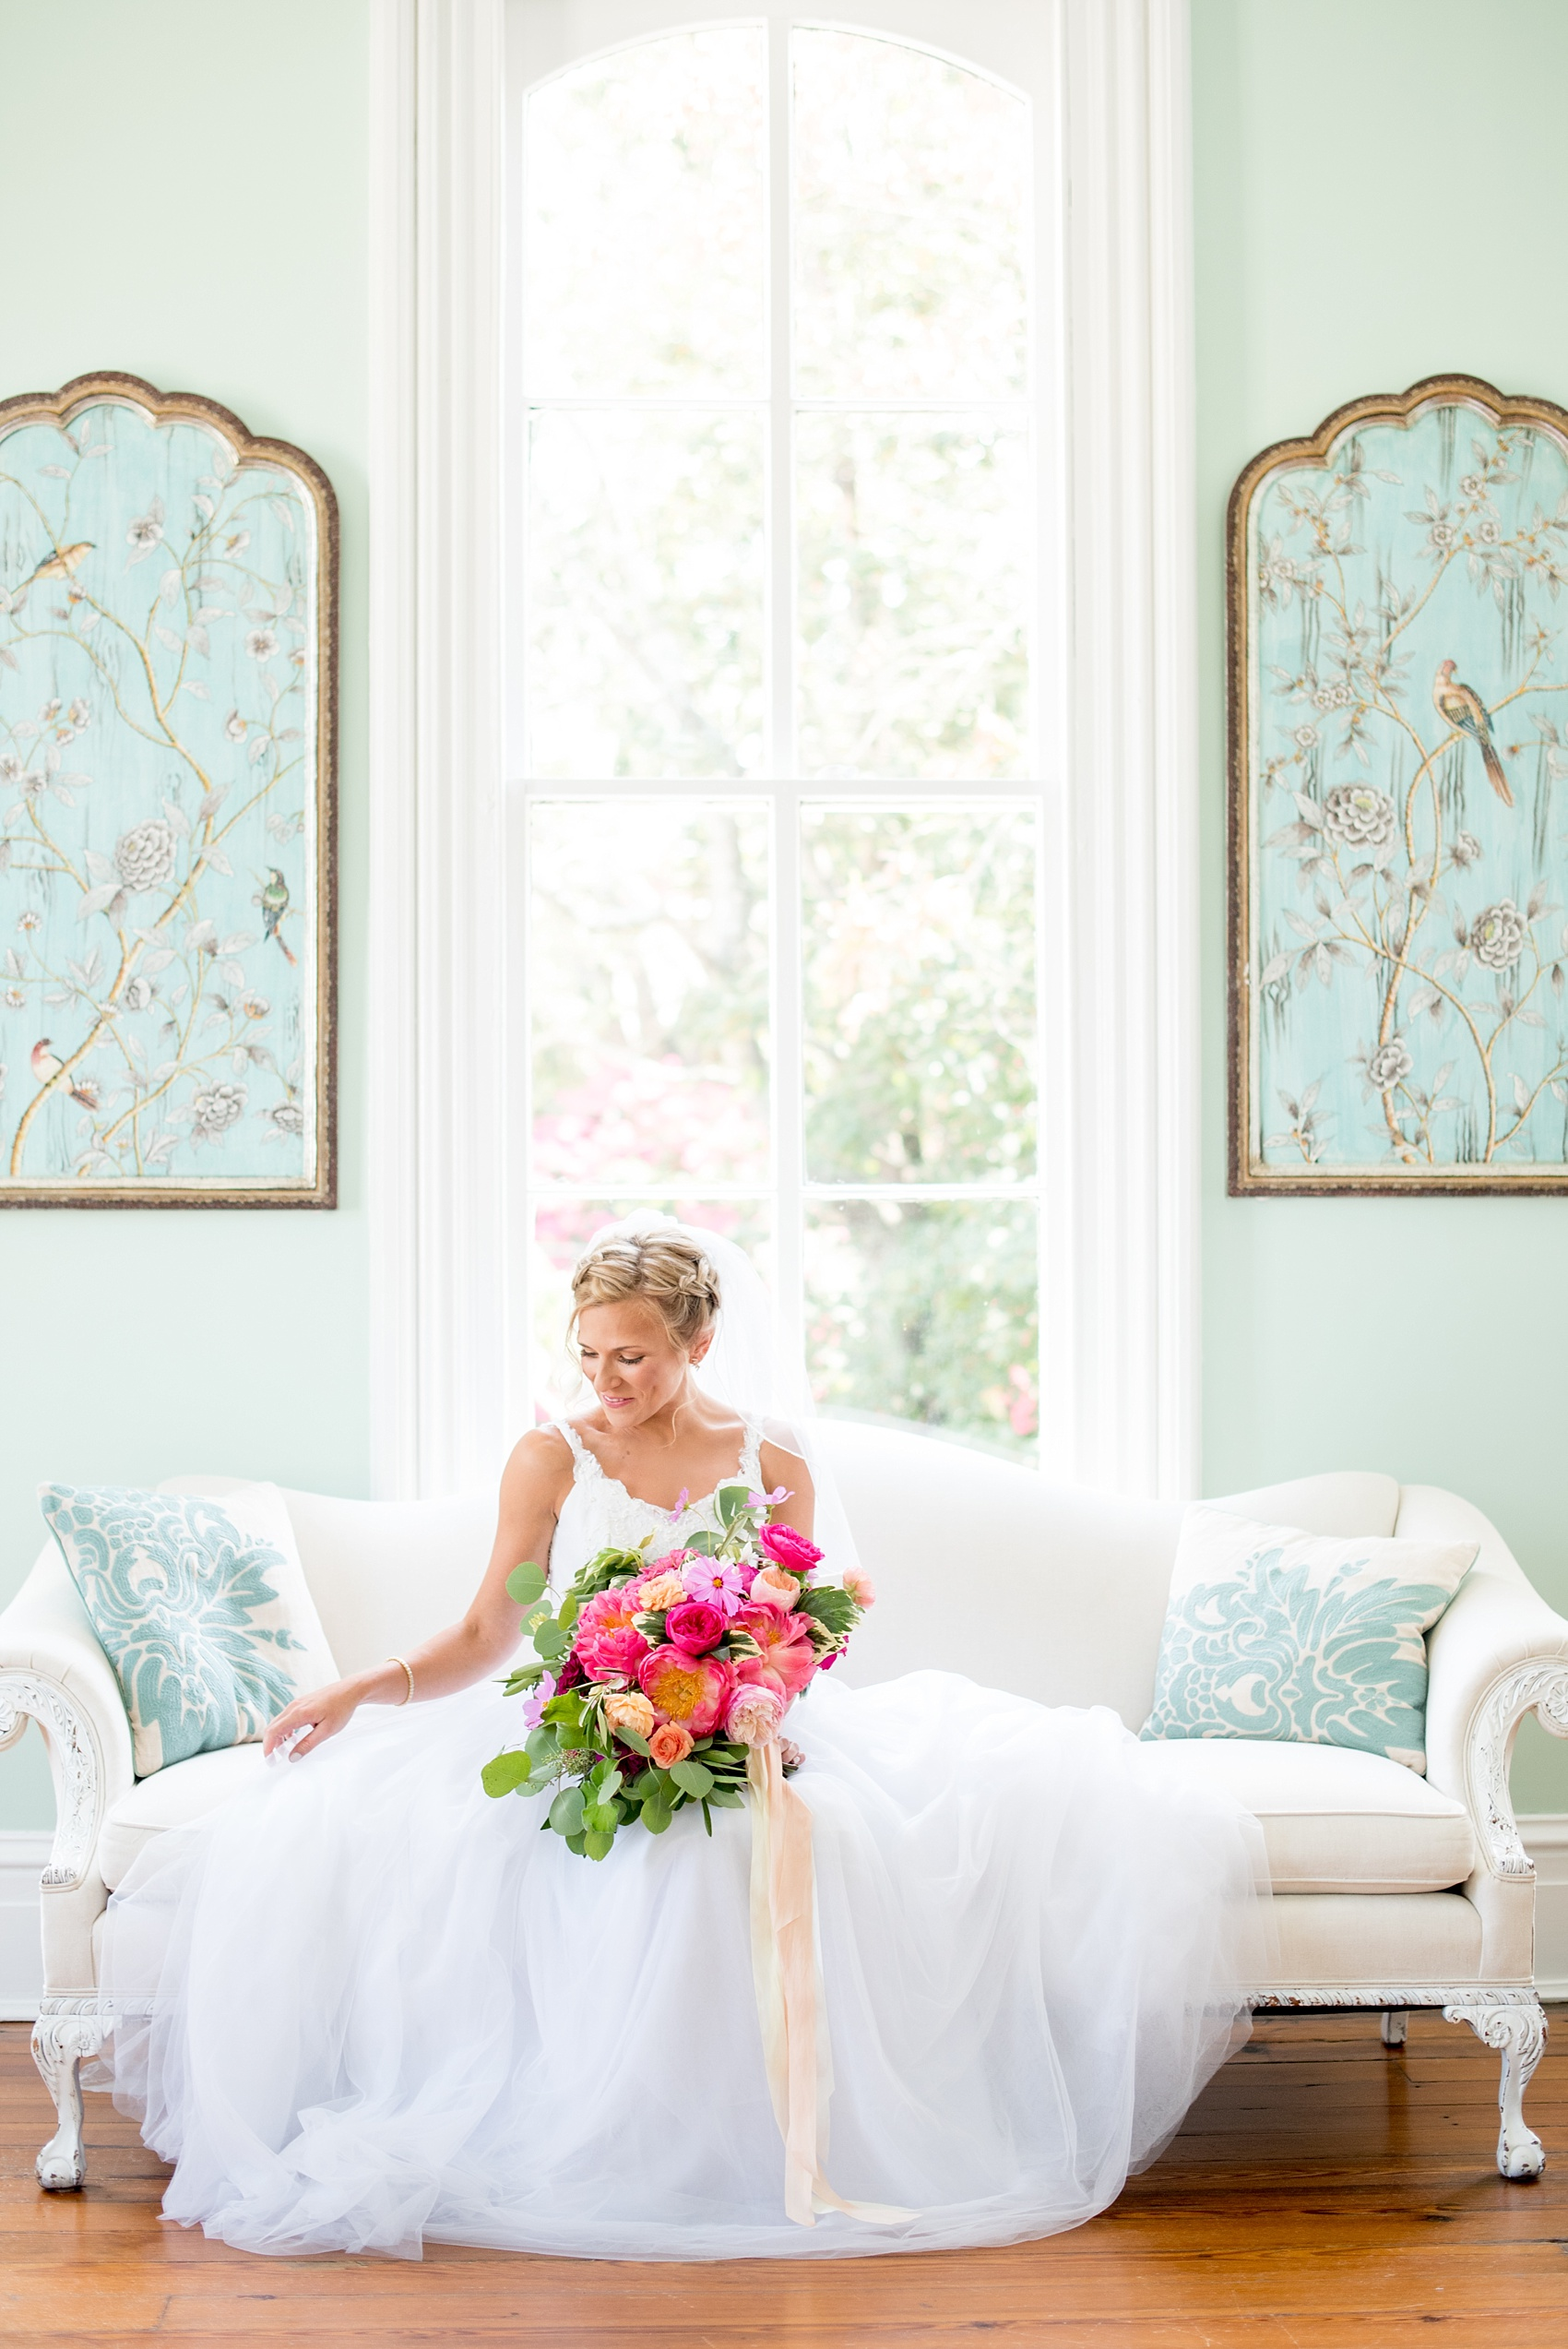 Mikkel Paige Photography wedding photos at The Merrimon-Wynne House in downtown Raleigh. A bridal portrait with the bride's tulle skirt and colorful bouquet by Meristem Floral.